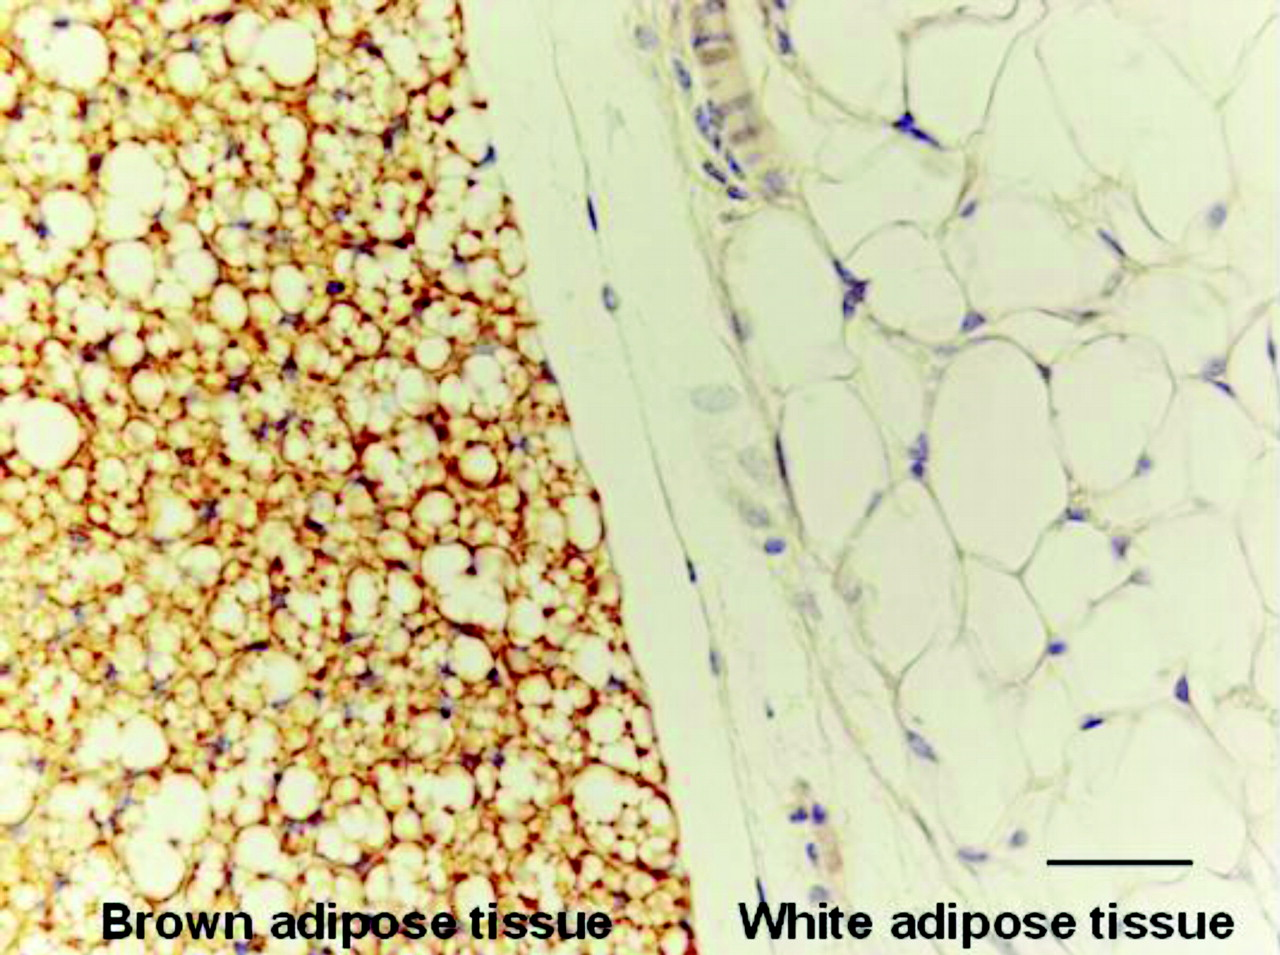 The difference between brown and white fat cells. Credit: Susan Ardizzoni.